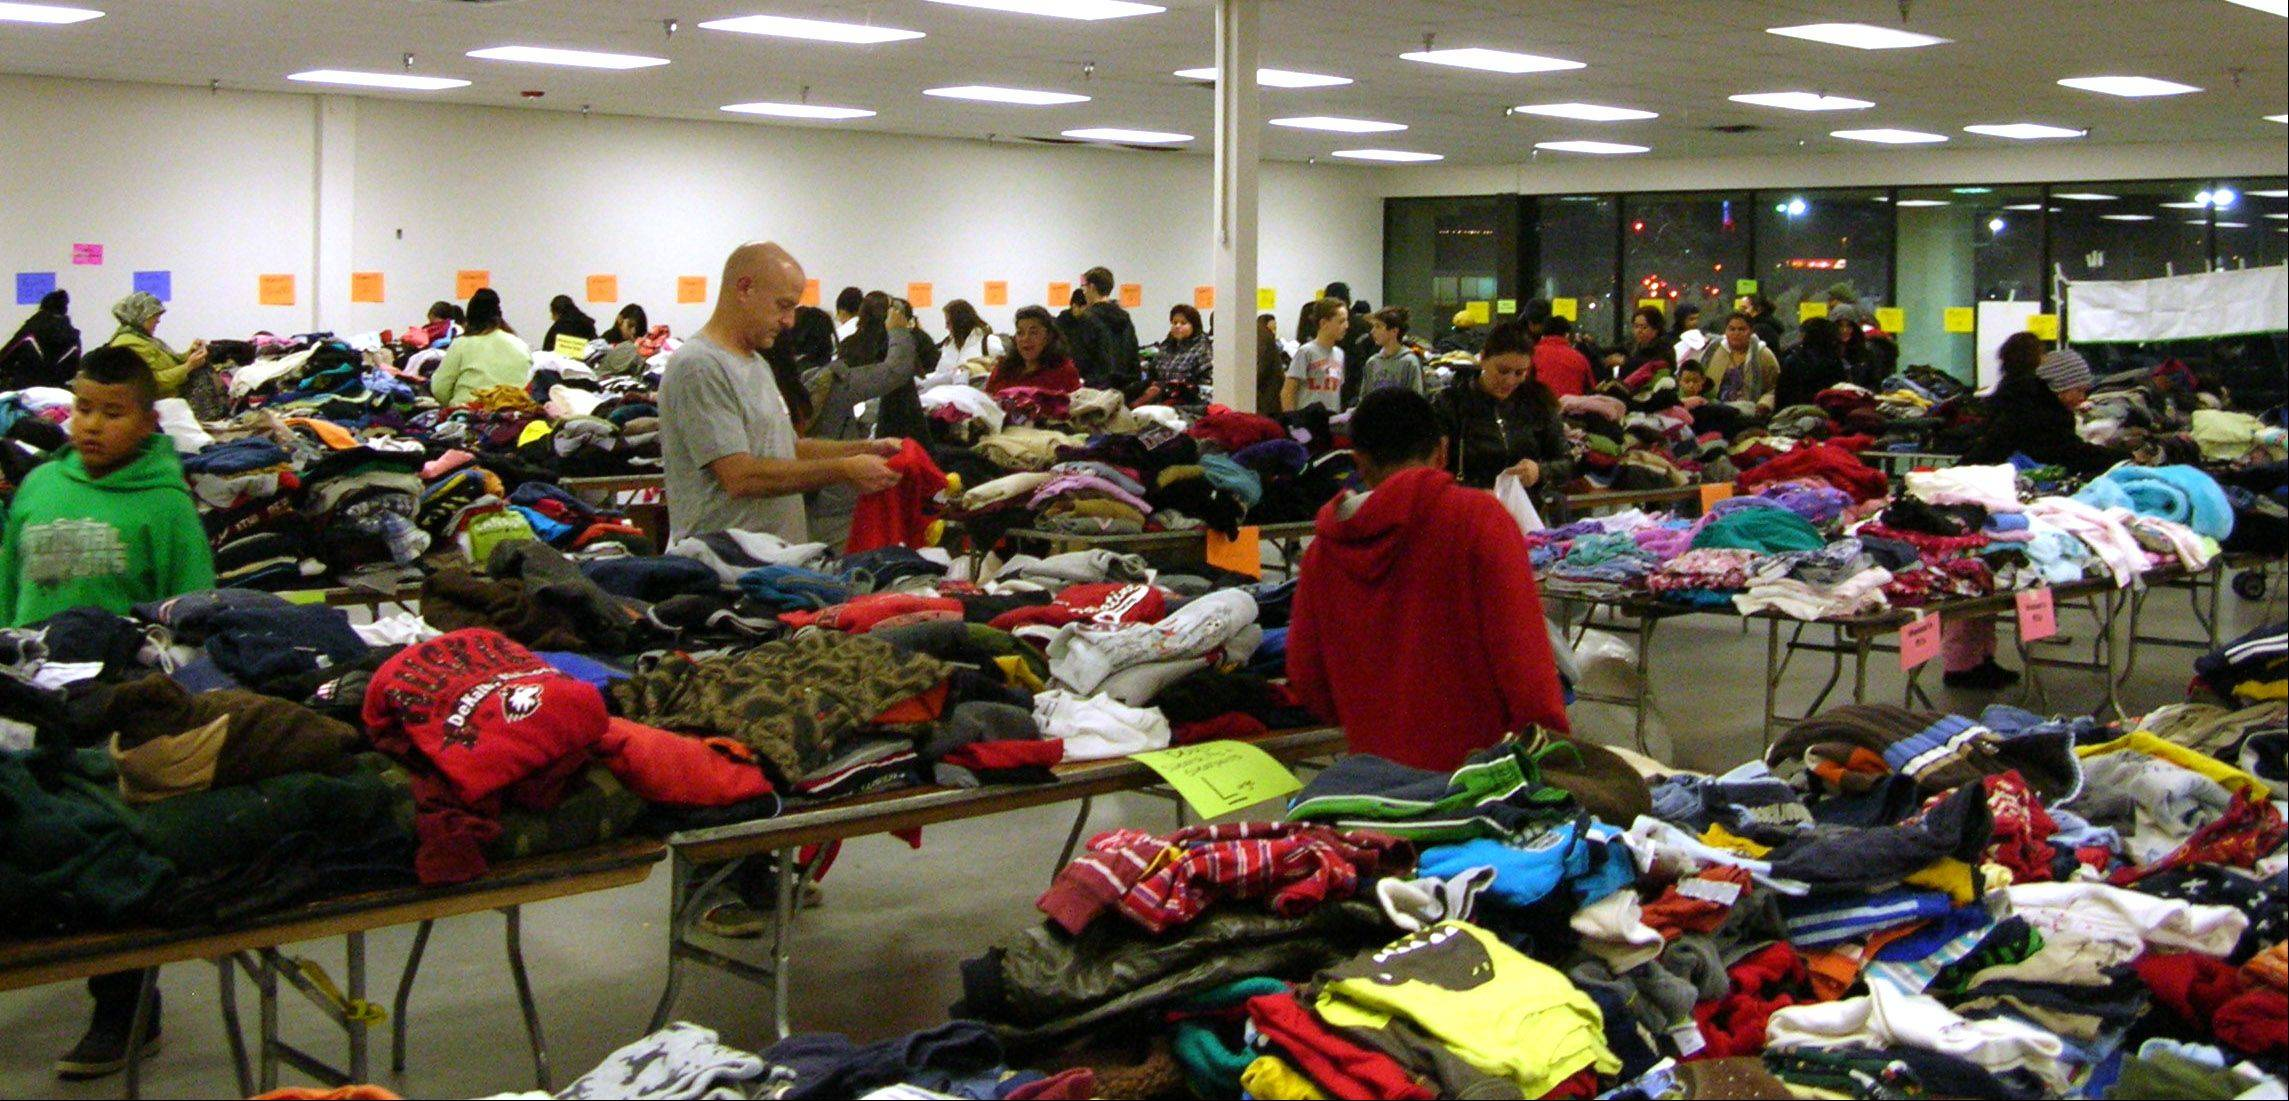 Palatine Assisting Through Hope's Annual Day of Giving drew 970 people in need of winter clothing and outer wear for children. The event, operated by volunteers from area churches and high schools, has grown so big that it needed to be moved to a storefront donated by the owner of the Park Place Shopping Center in Palatine.